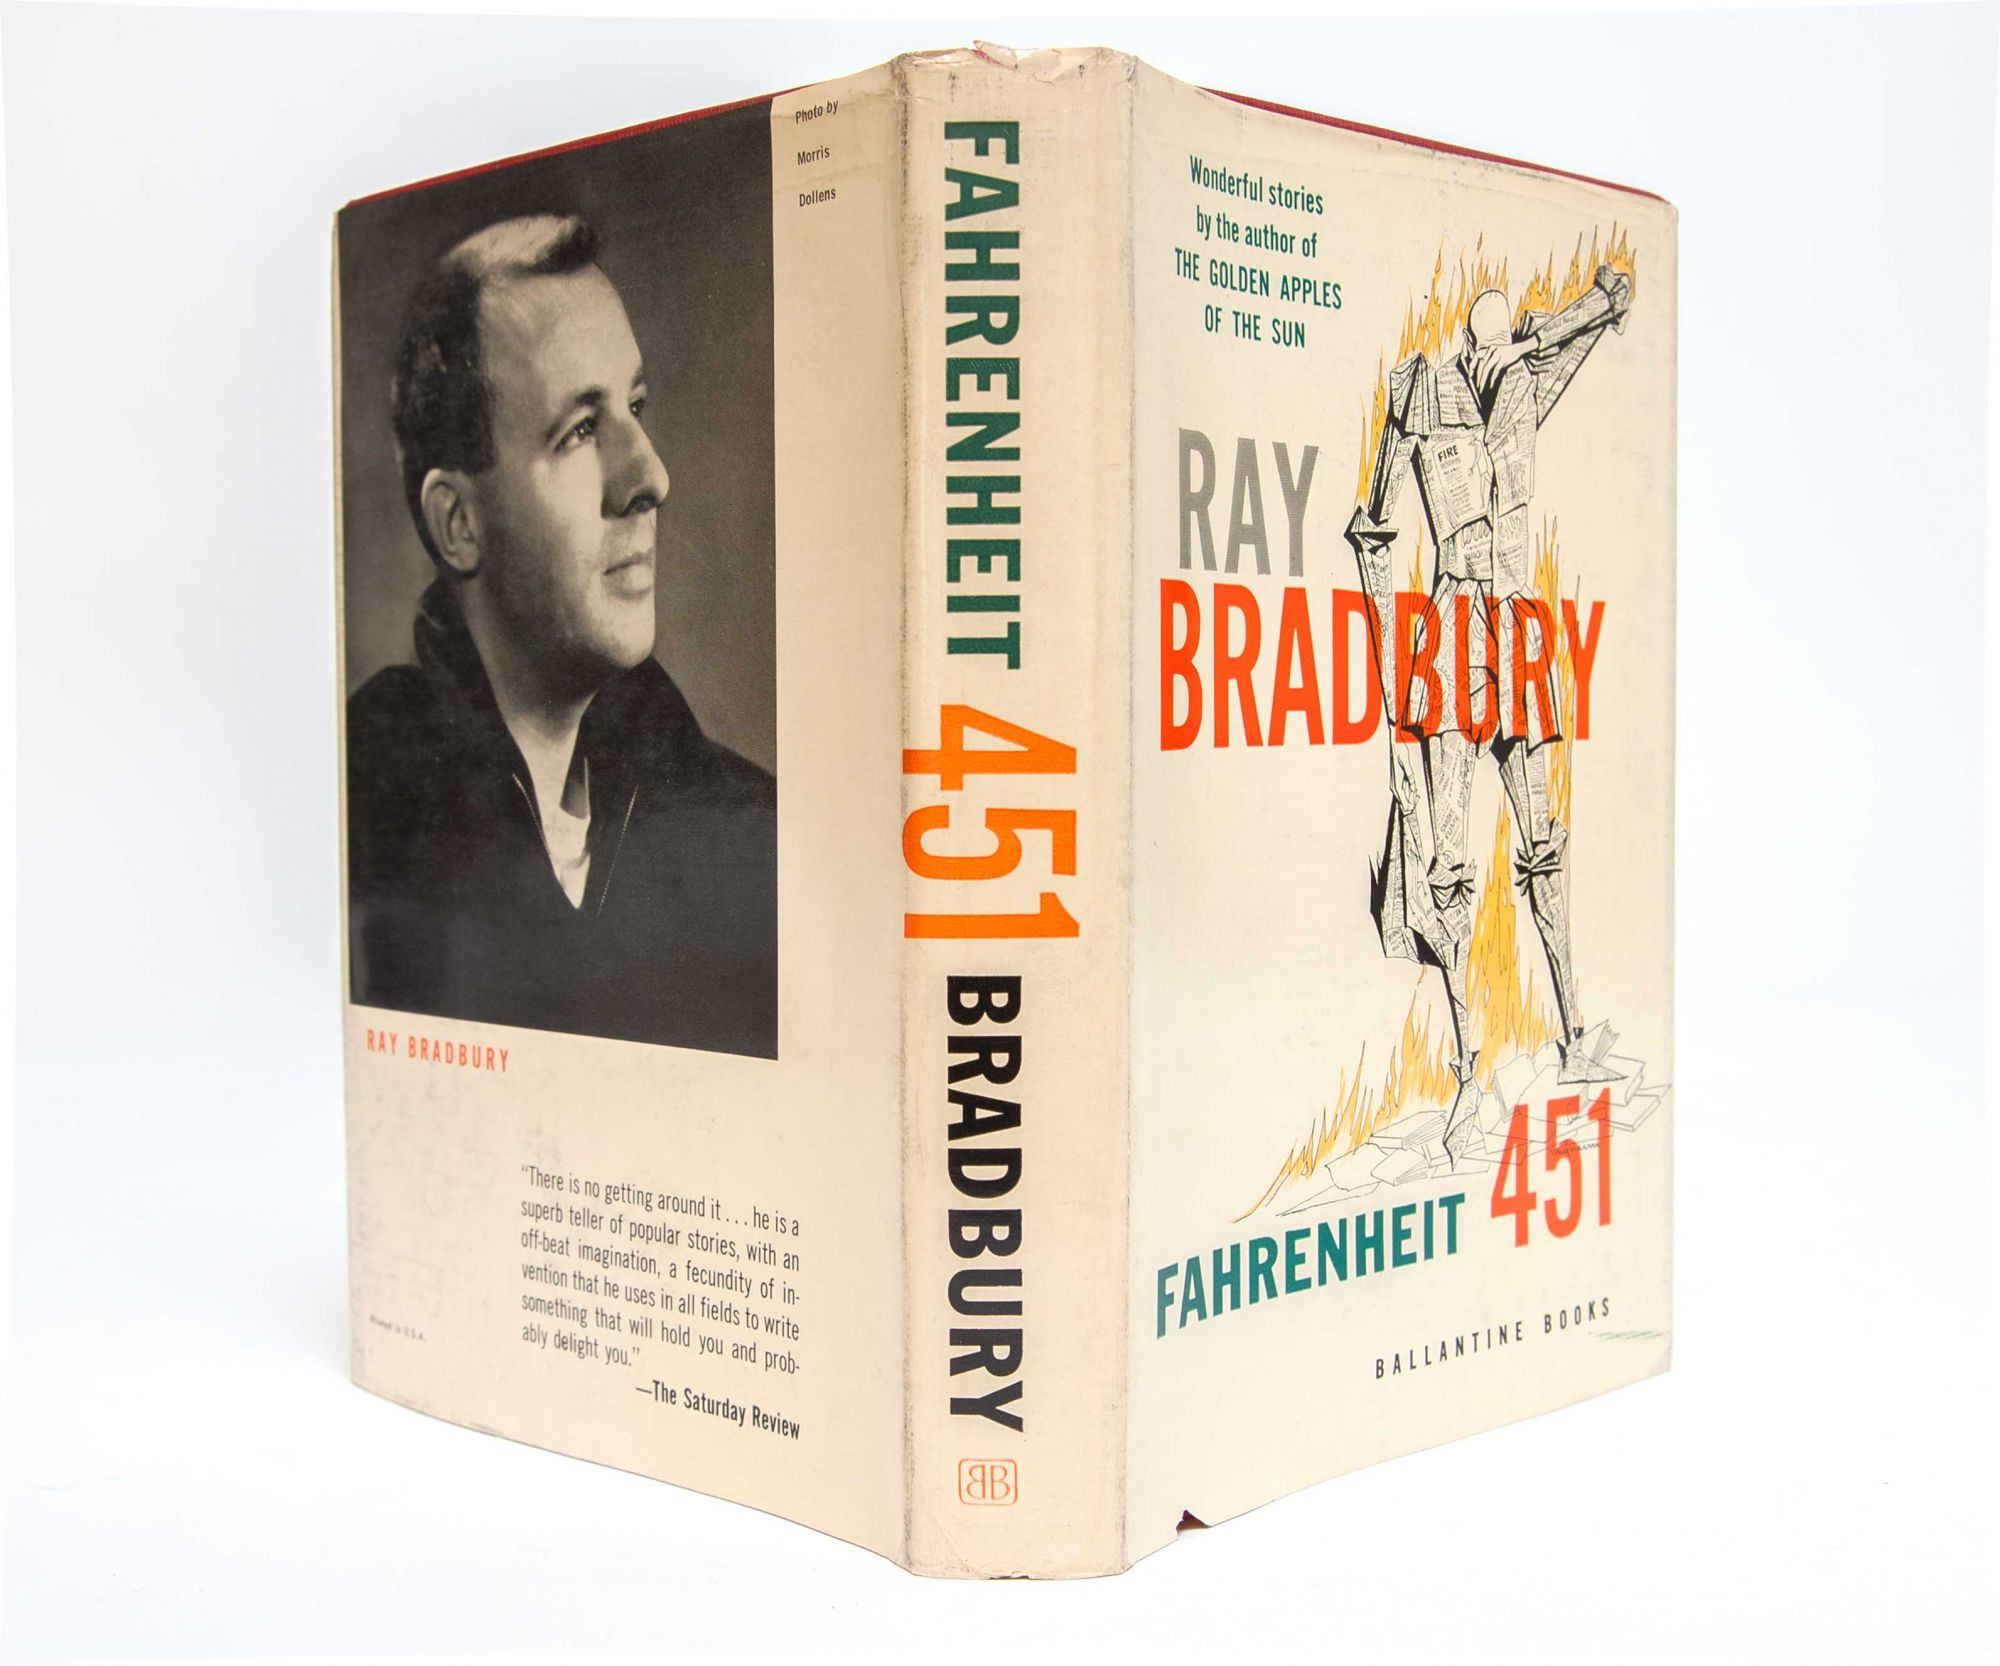 books and thinking outlawed in fahrenheit 451 by ray bradbury Fahrenheit 451 by ray bradbury flapping pigeon-winged books died on the porch and lawn of the house thinking little at all about nothing in particular.